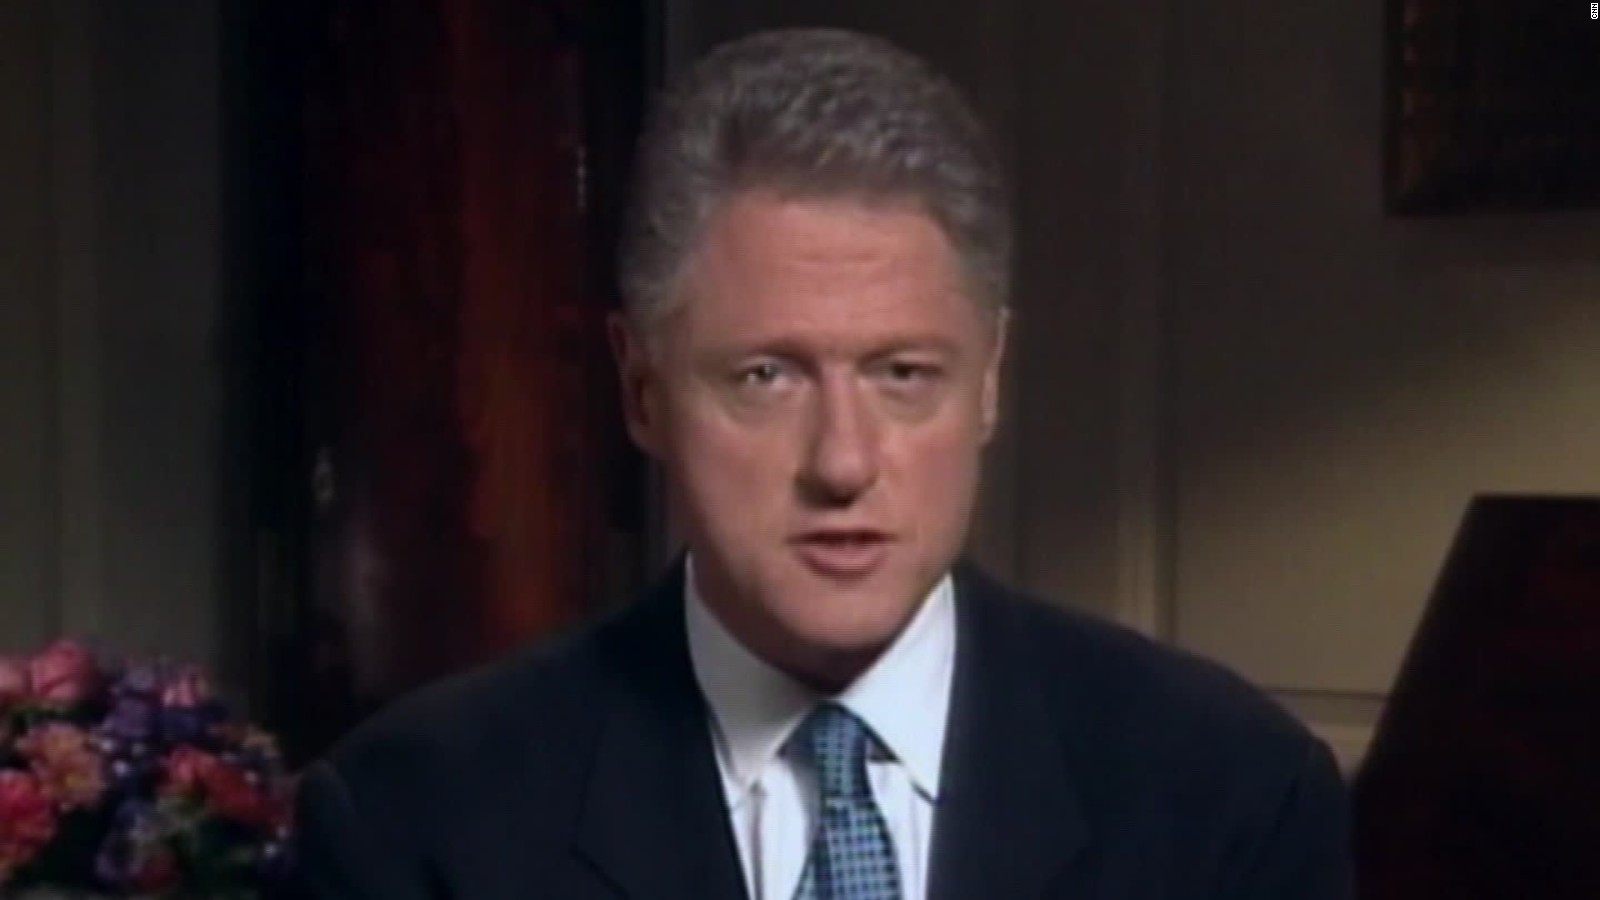 Judge ruled oral was not sex clinton